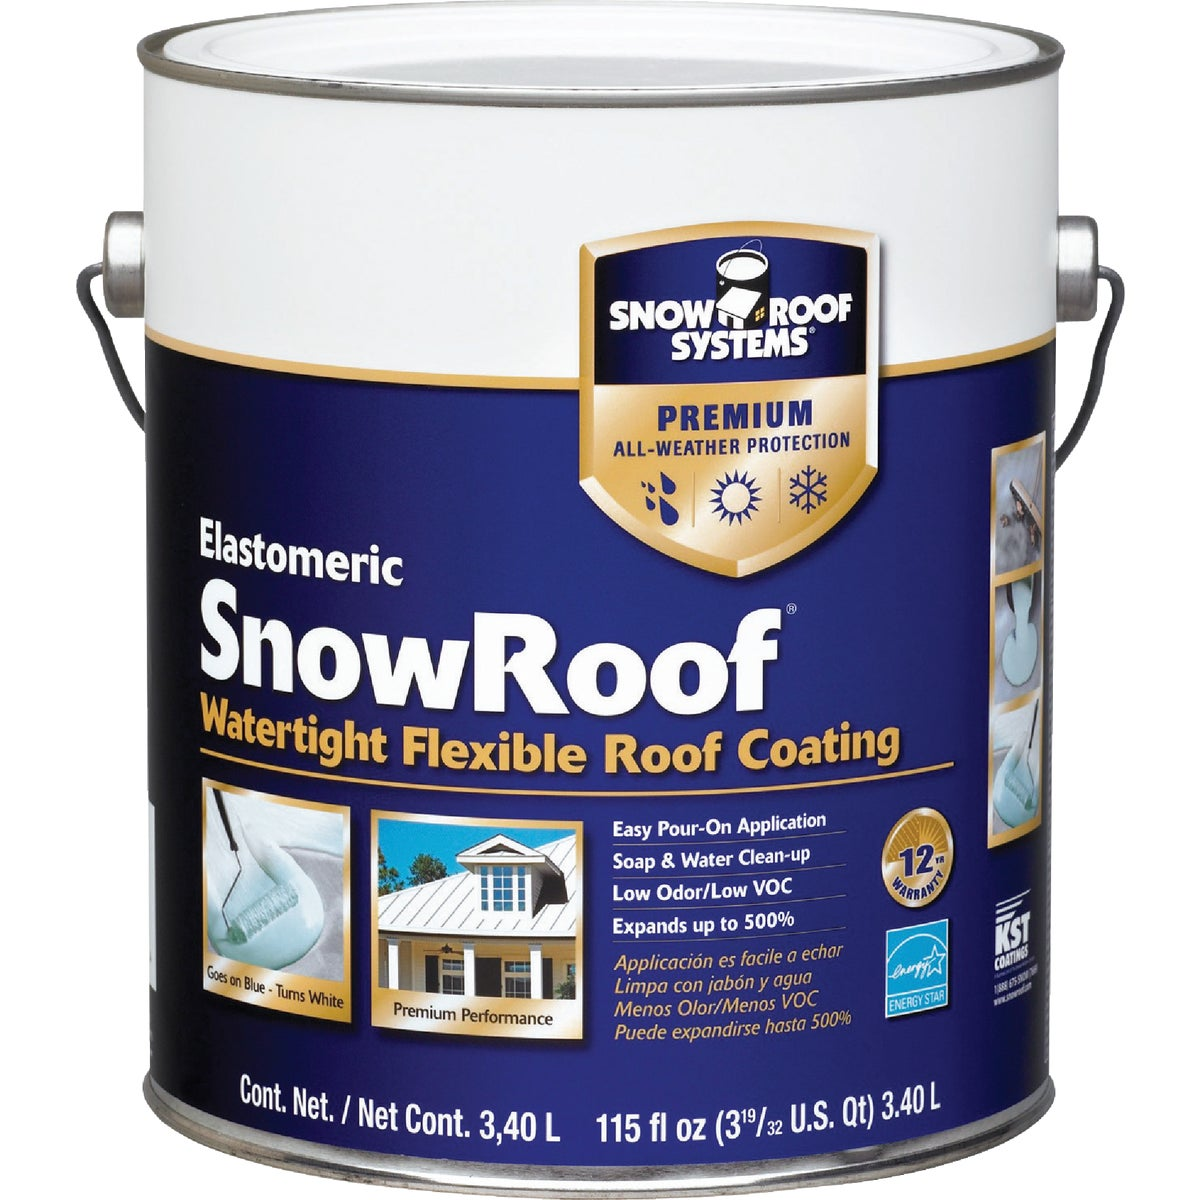 GAL SNOW ROOF COATING - KST000SRB-16 by Snow Roof